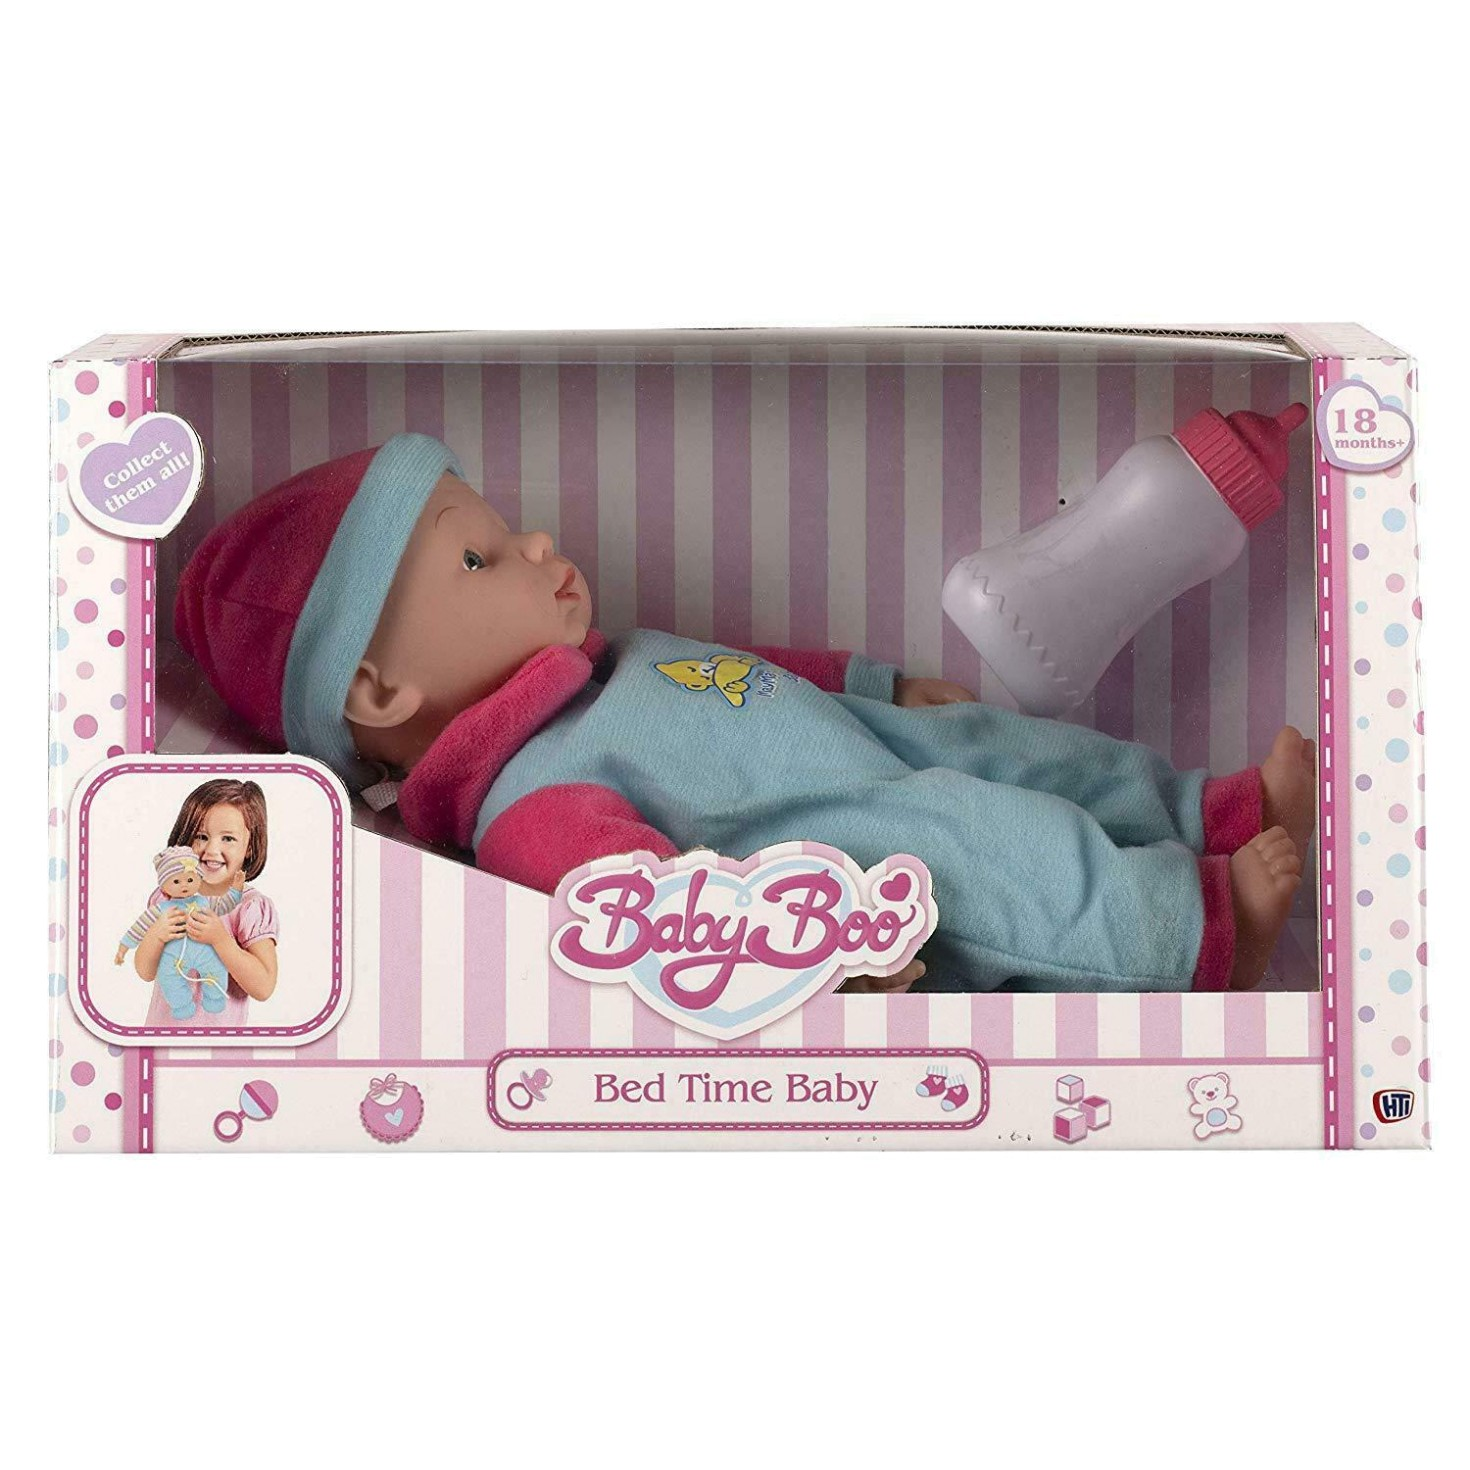 BABY BOO BED TIME BABY